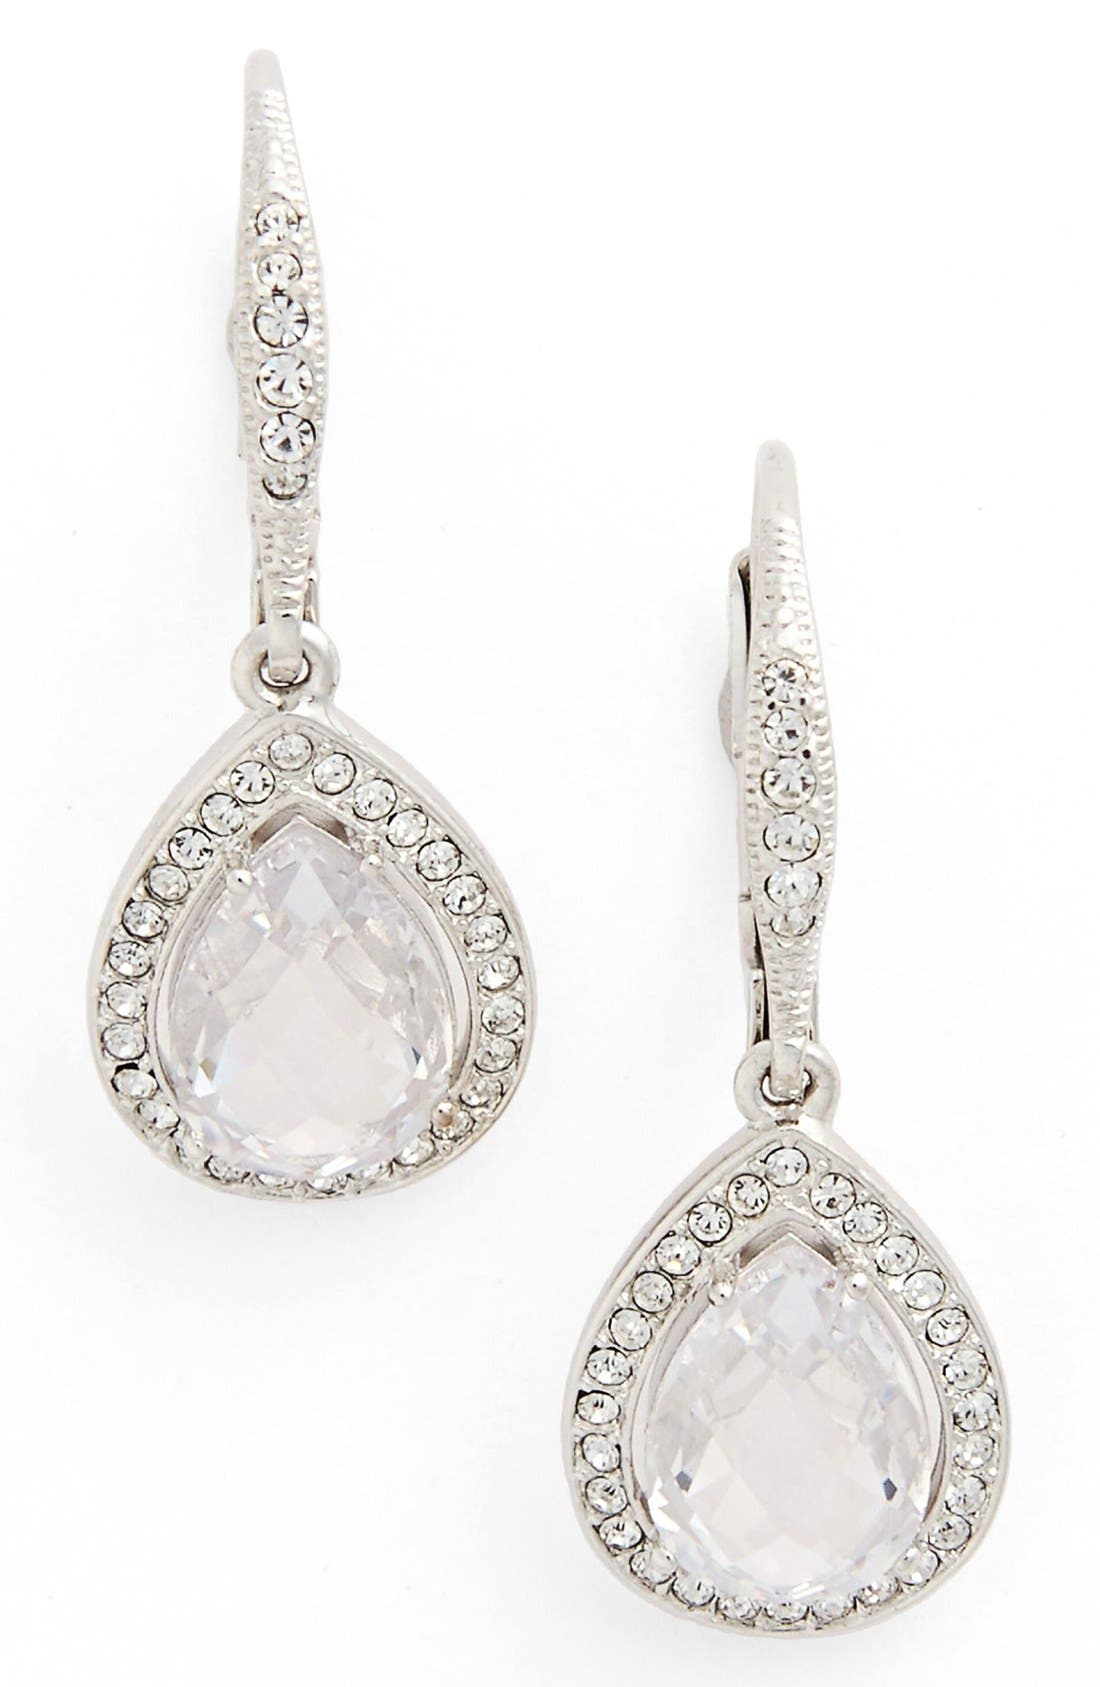 Pear Drop Earrings,                         Main,                         color, CLEAR CRYSTAL/ SILVER